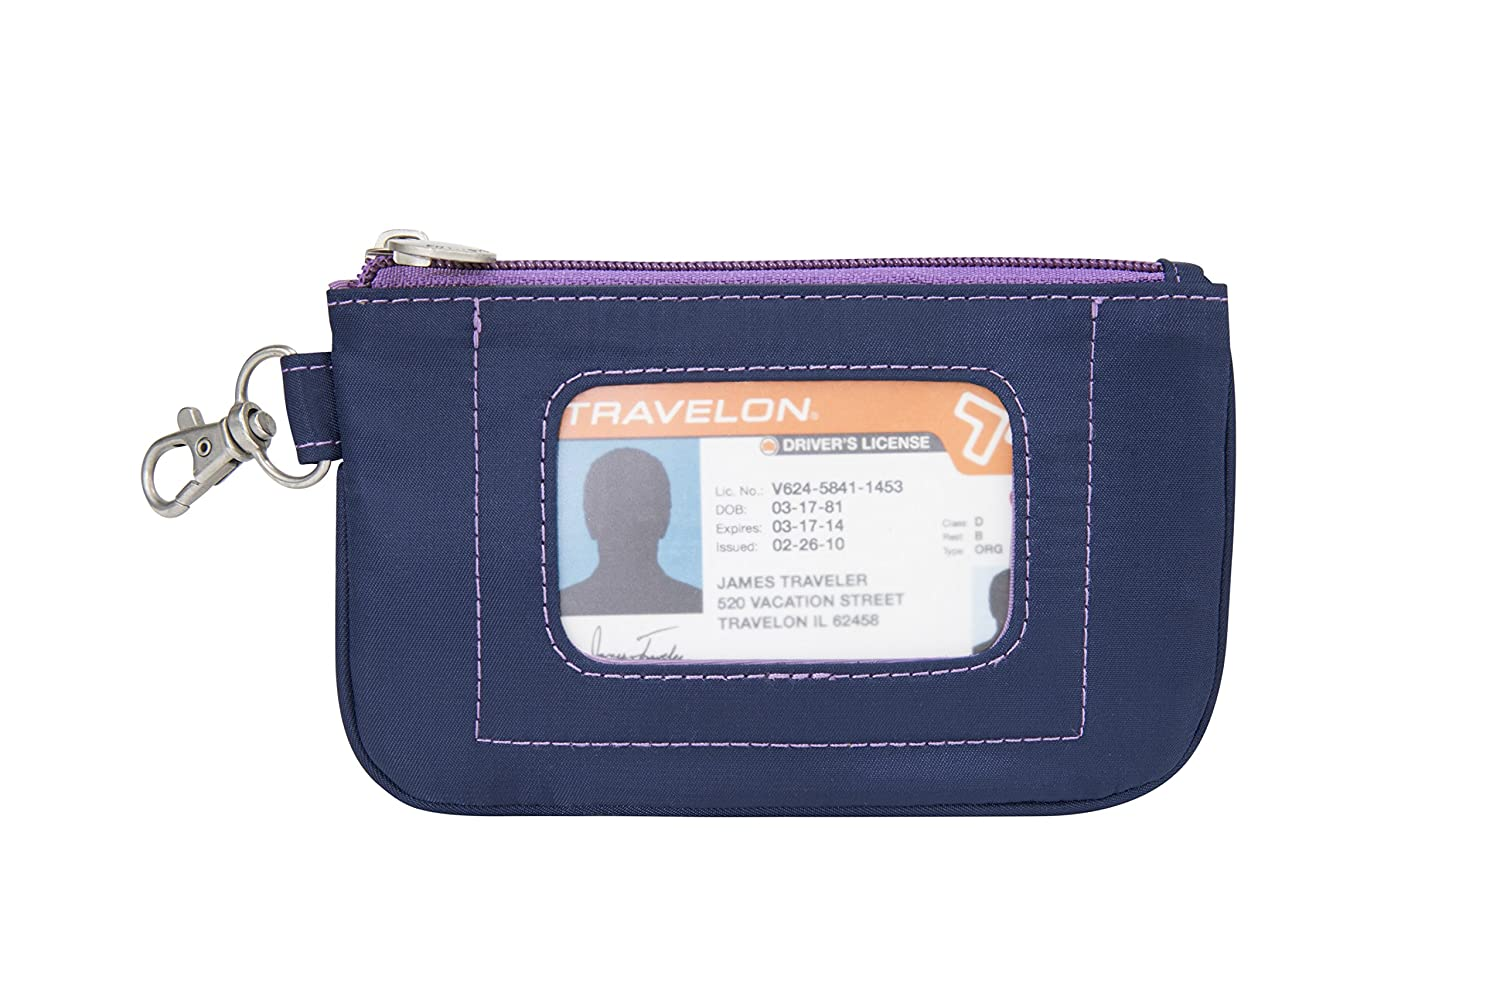 Purse with outside attached wallet